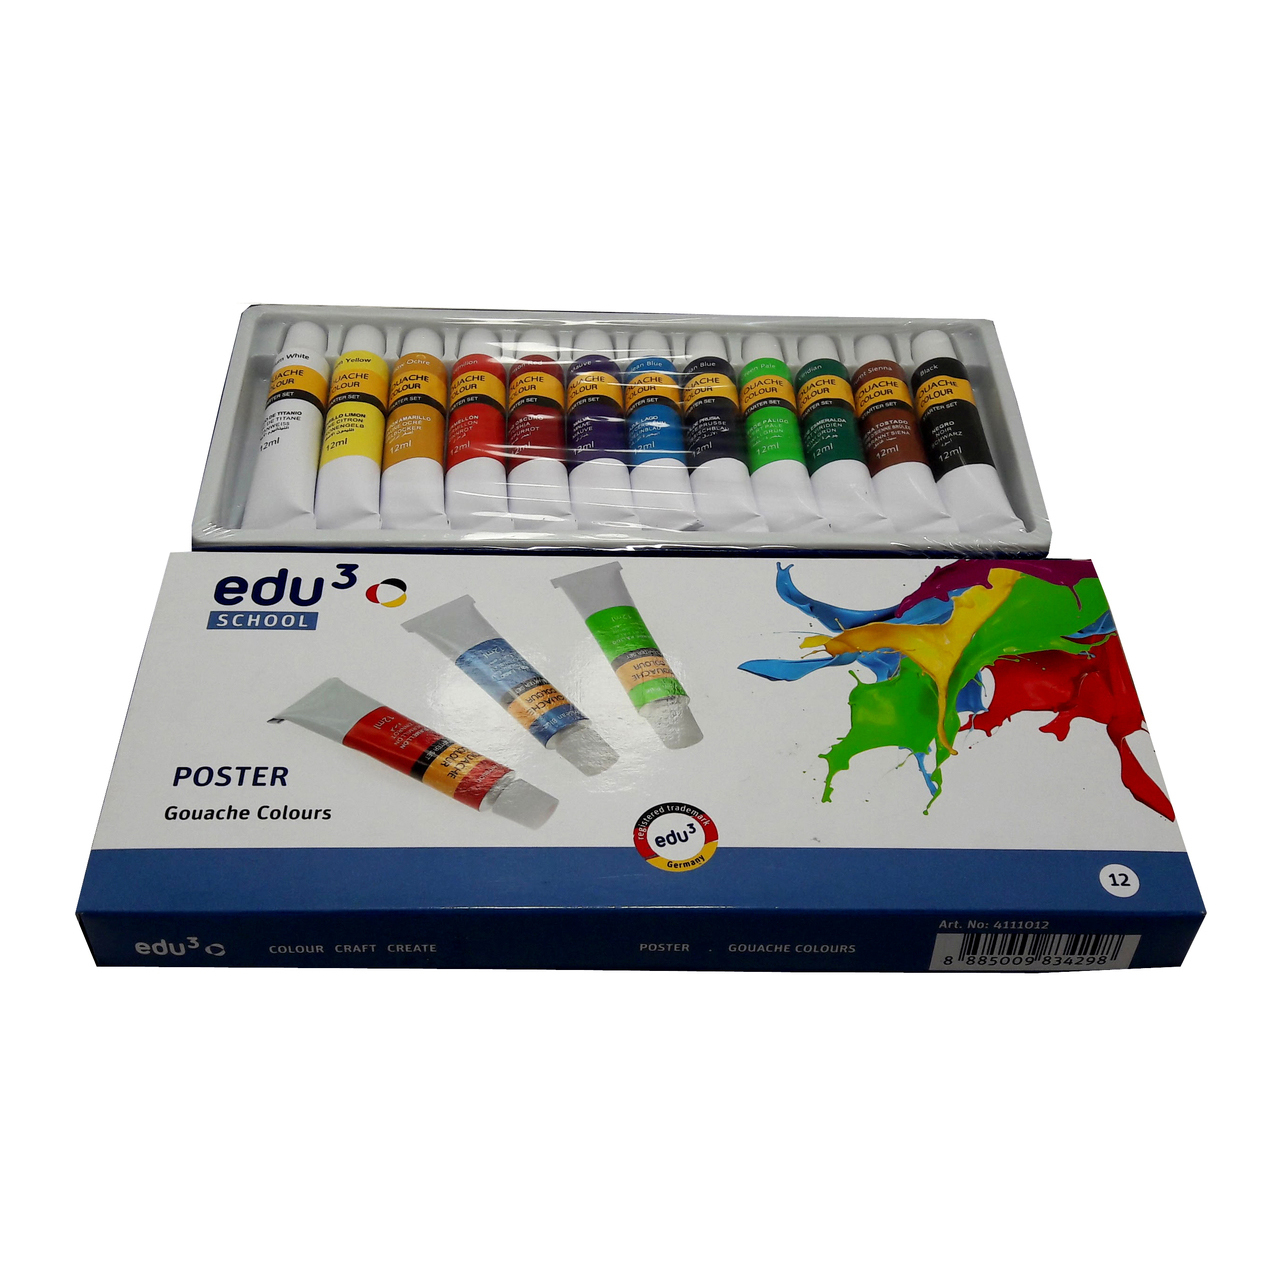 EDU3 4111012 Poster Gouache Colour Paint (pkt/12pcs)